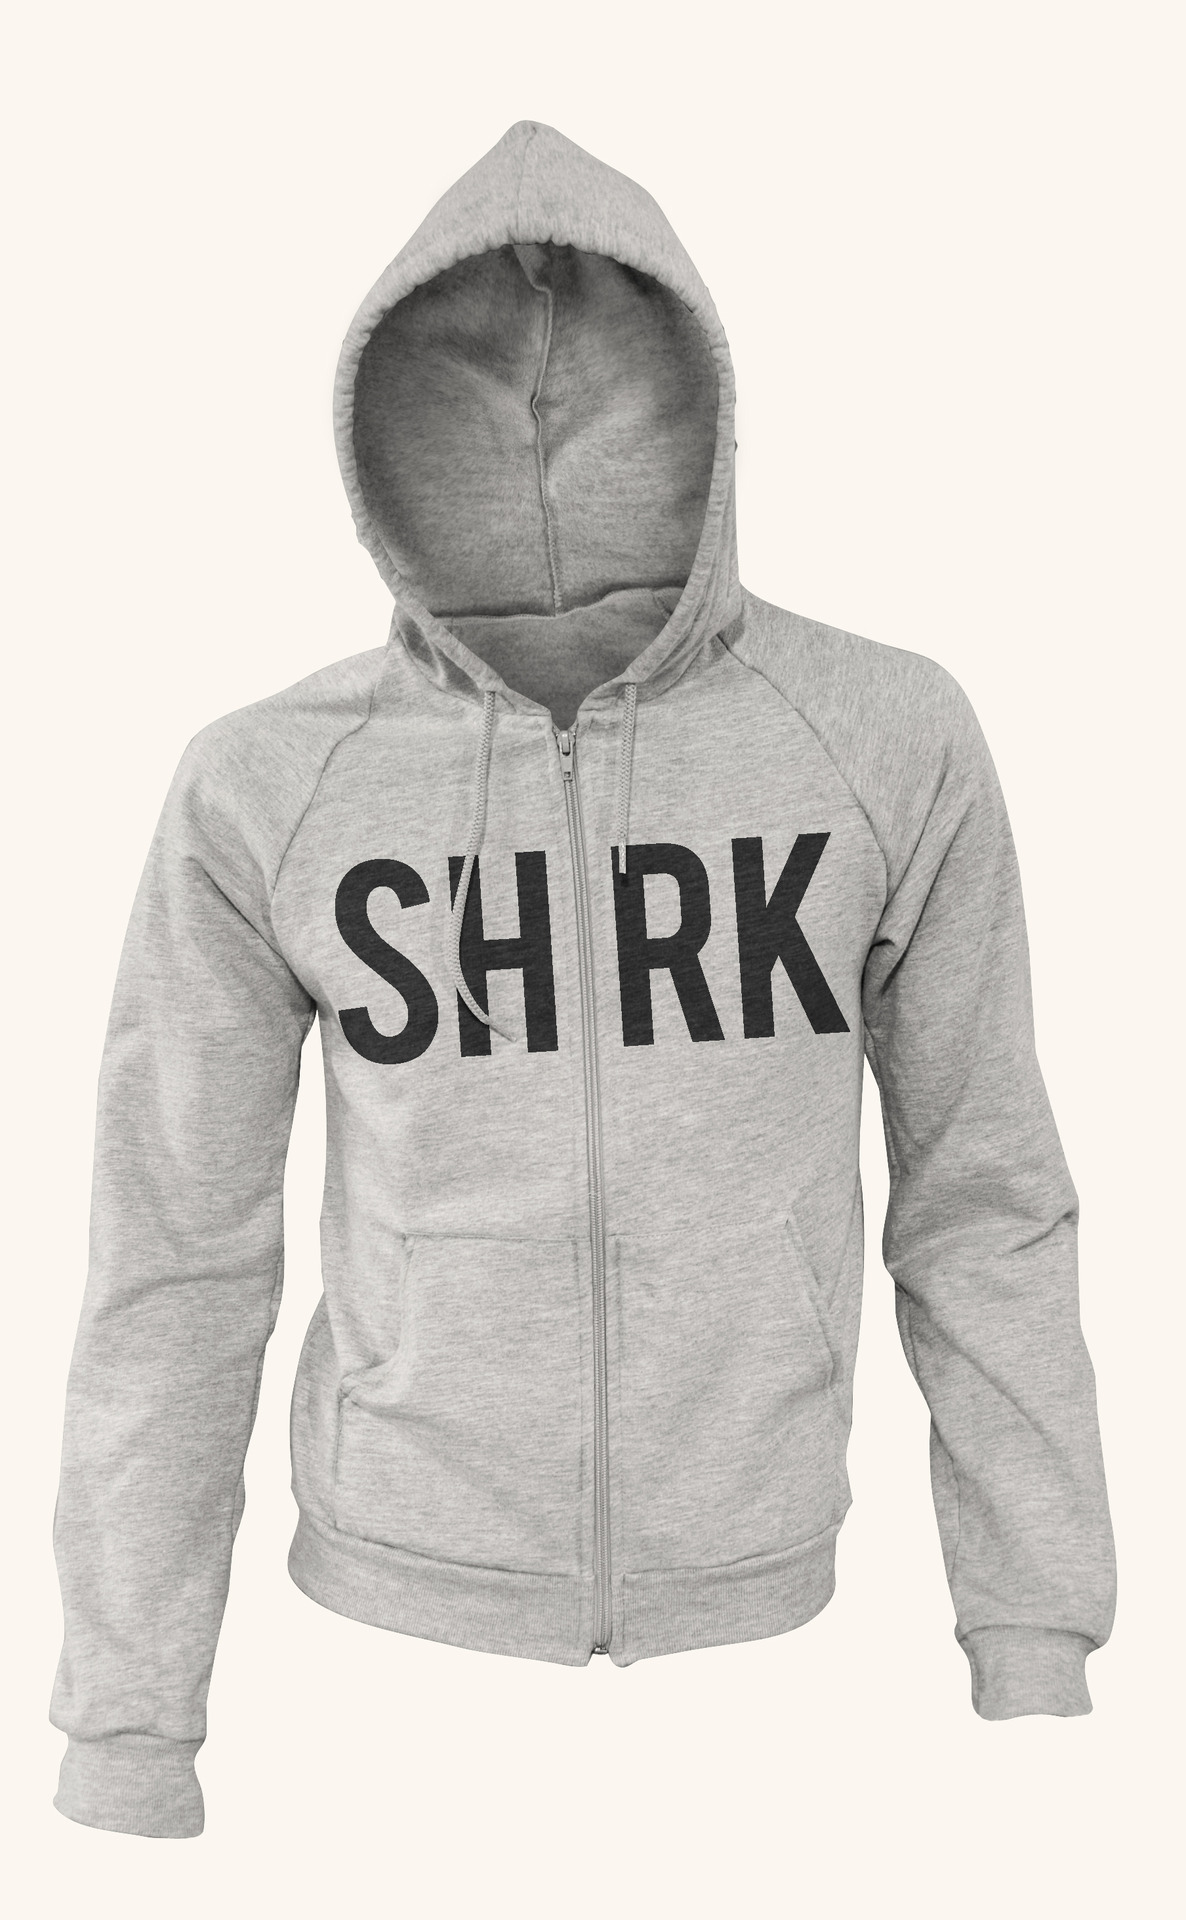 NOW AVAILABLE FOR PRE-ORDER! Any one who purchases one of these will get my next vinyl release for free. And I think you'll be very happy with it! Actually I know you will.     http://iamshark.limitedrun.com/products/501981-shrk-hoodie-preorders